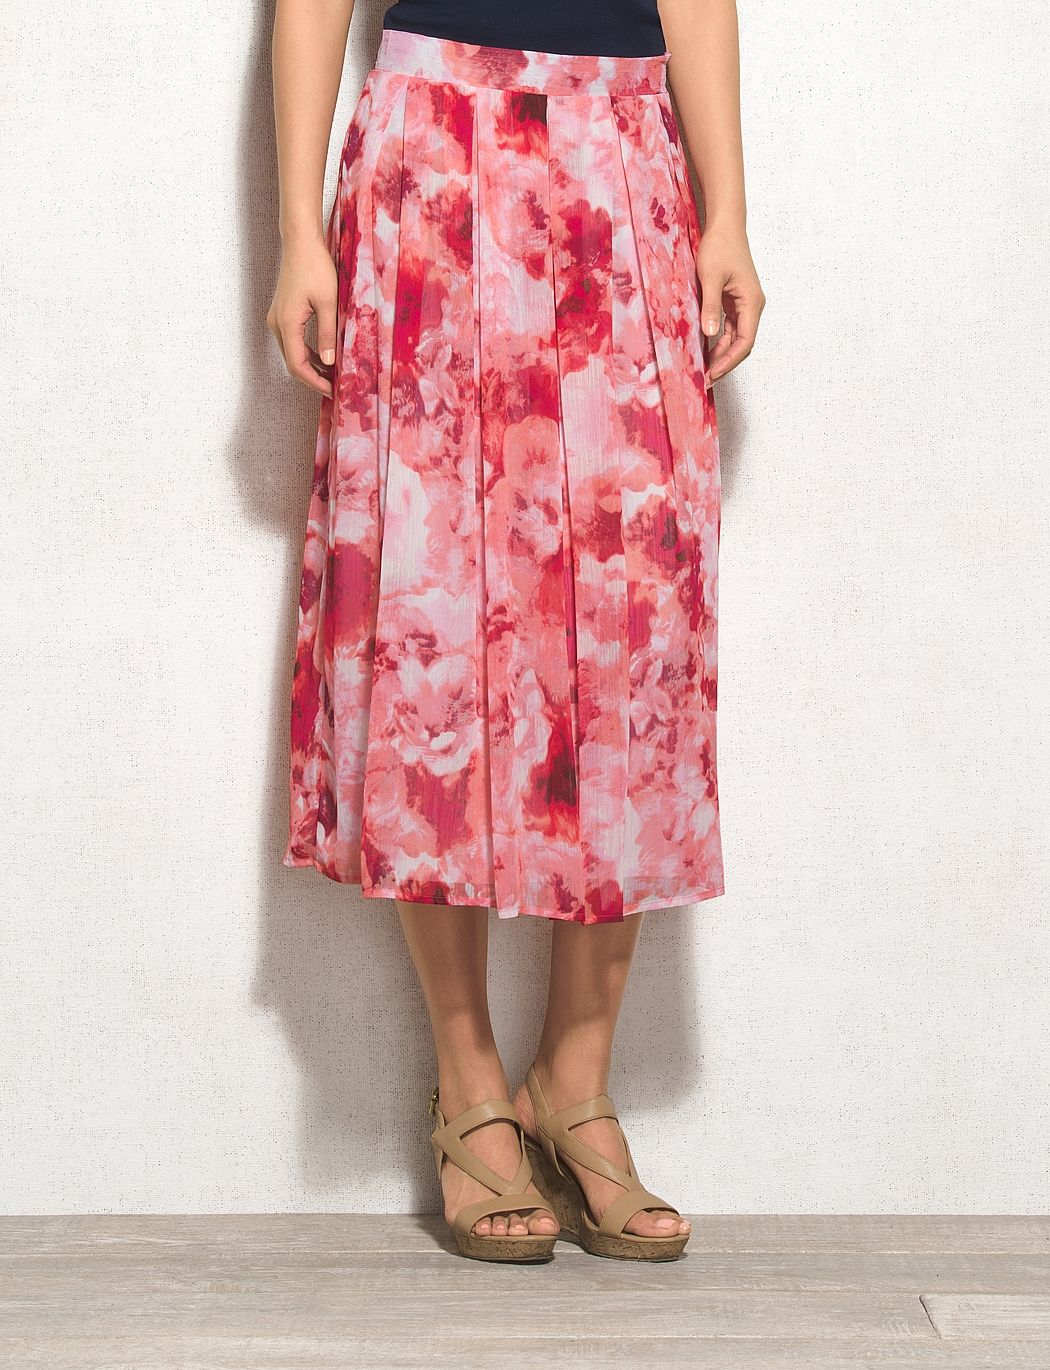 Misses | Skirts | A-Line Skirts | Roz & ALI Pleated Floral Skirt